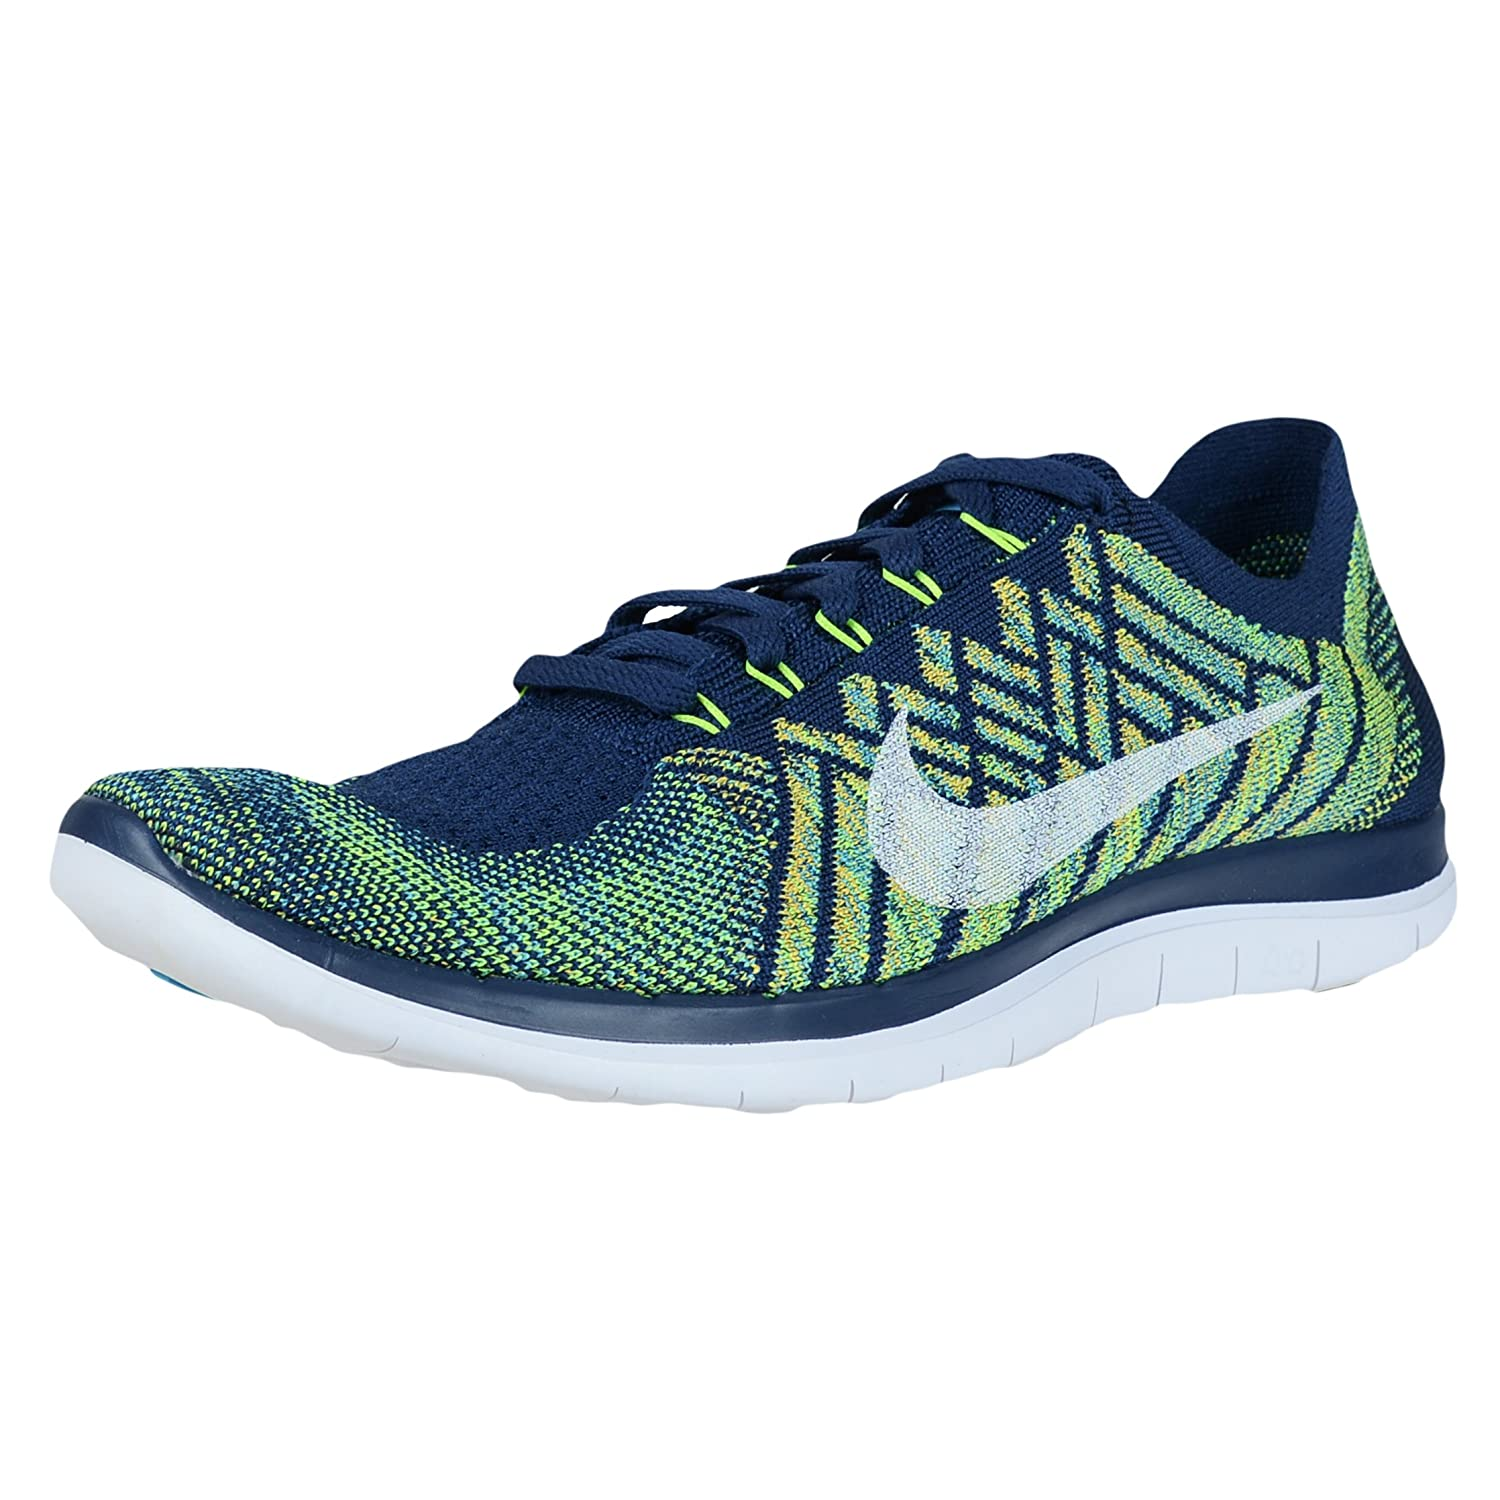 new product 6df3c 22cba ... Nike Free 4.0 Flyknit Men s Sports Shoes